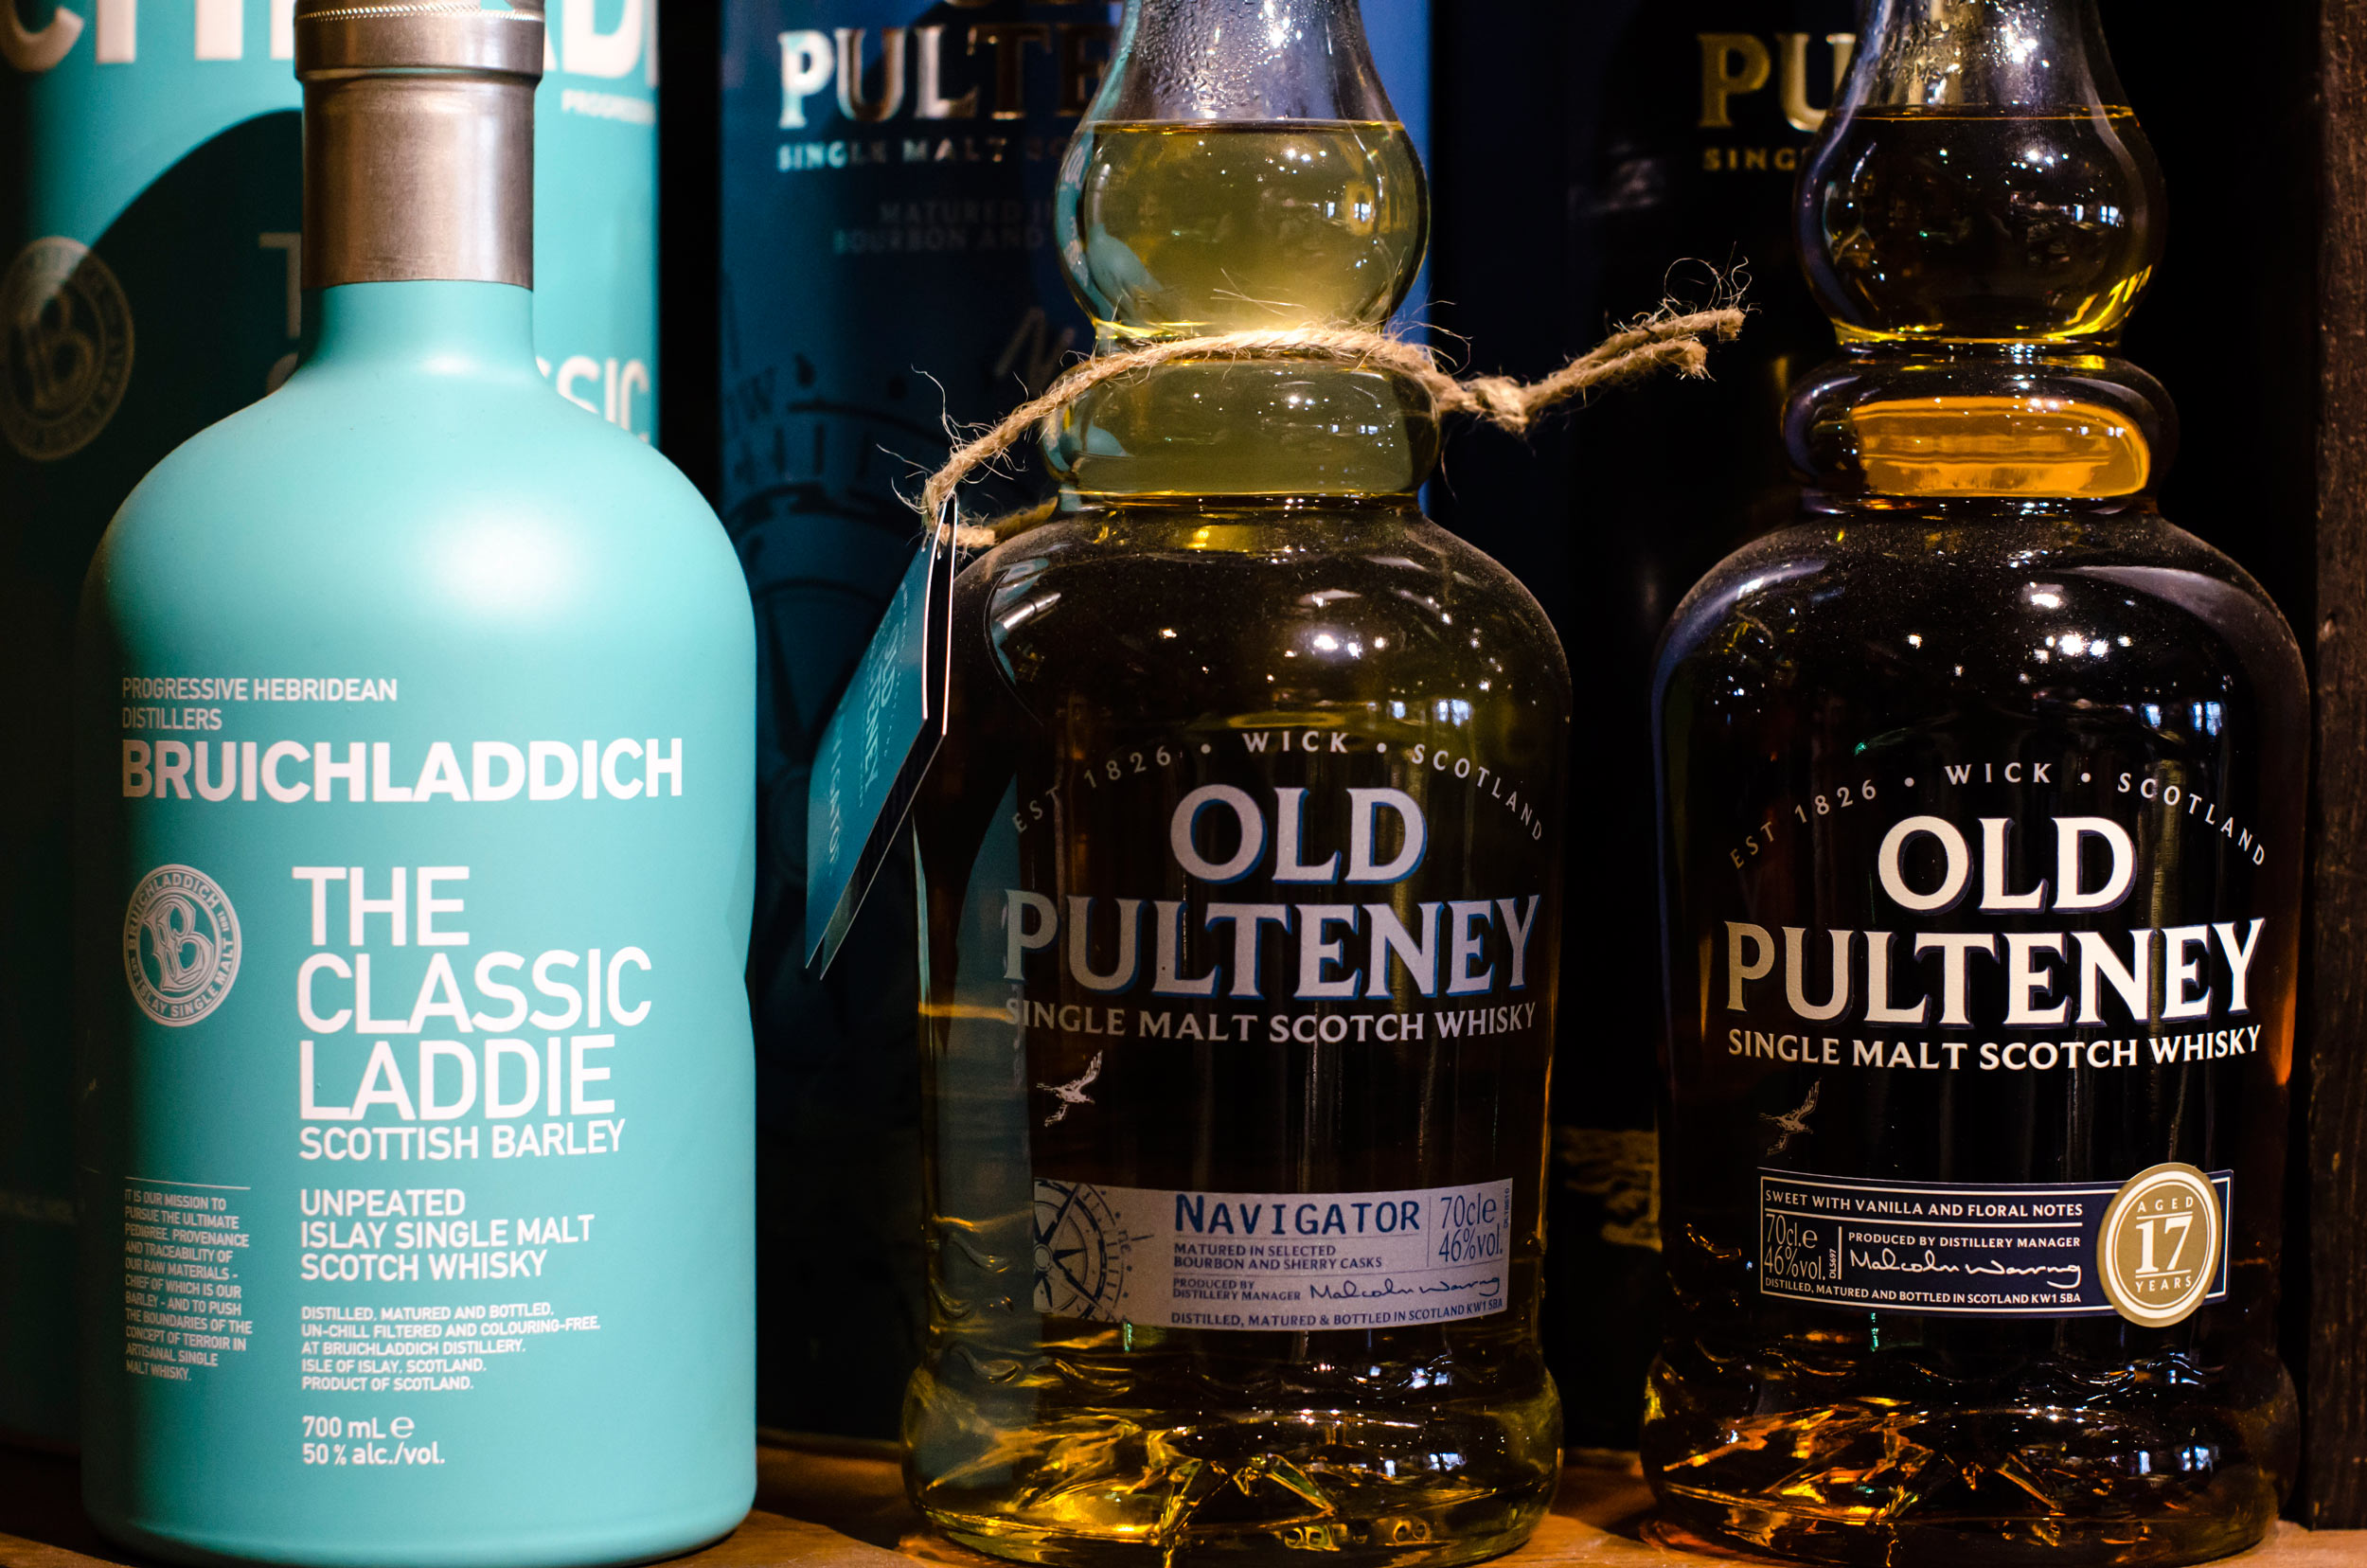 whisky bruichladdich Scottish Barley The classic laddie et old puteney chez les sommeliers cavistes